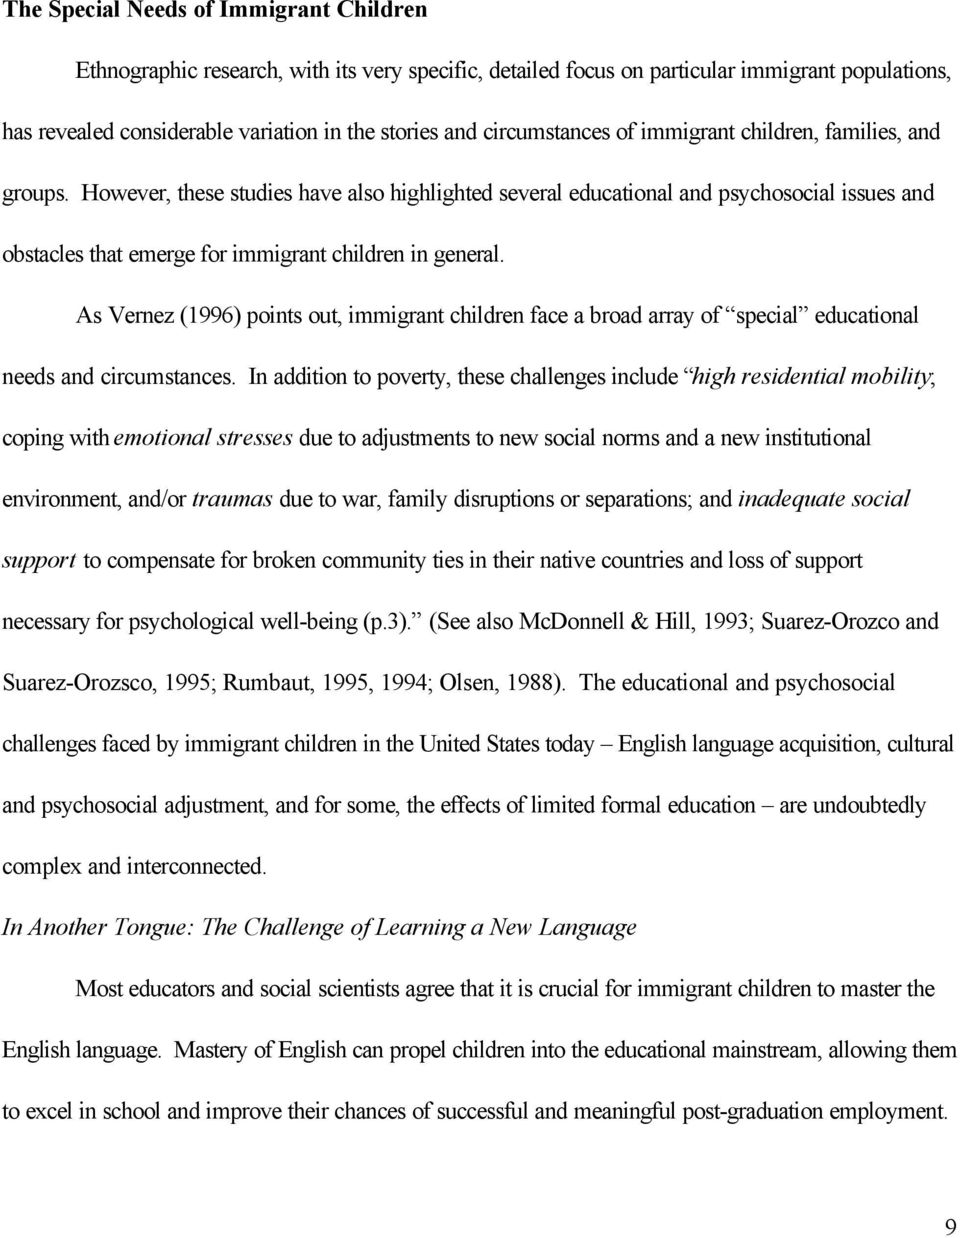 However, these studies have also highlighted several educational and psychosocial issues and obstacles that emerge for immigrant children in general.